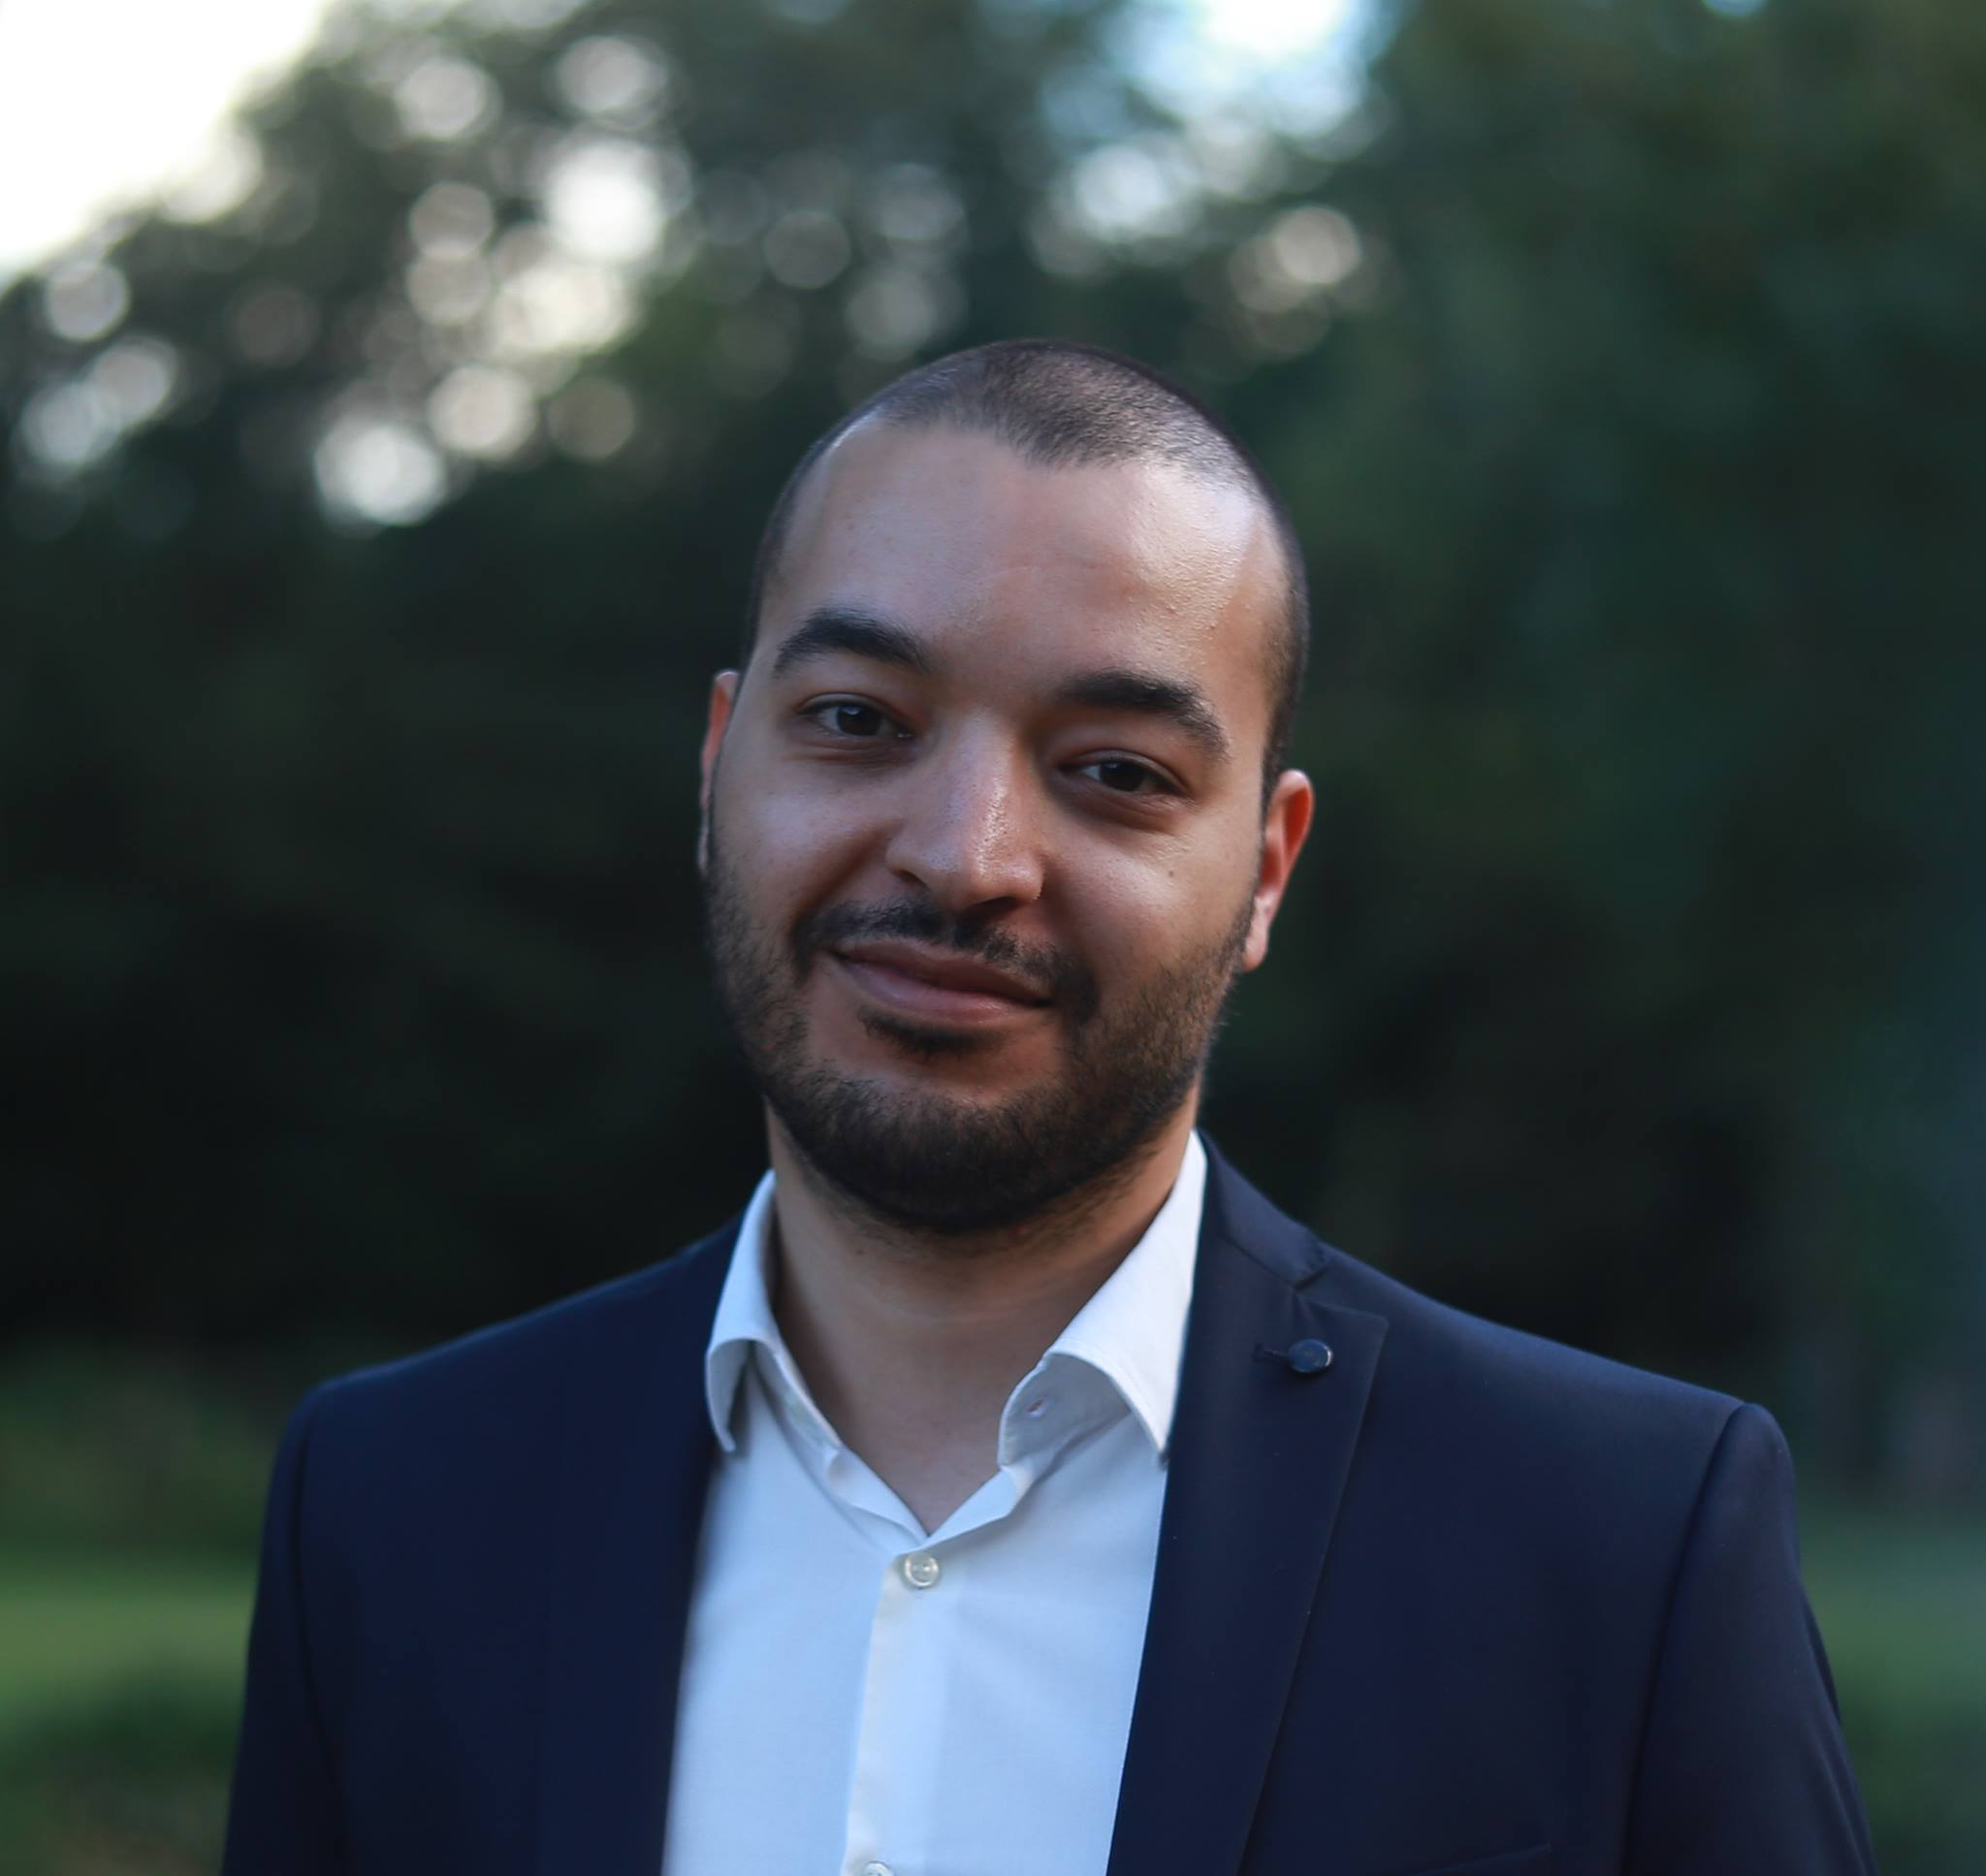 A conversation with Majid Oukacha, for Gatestone Institute